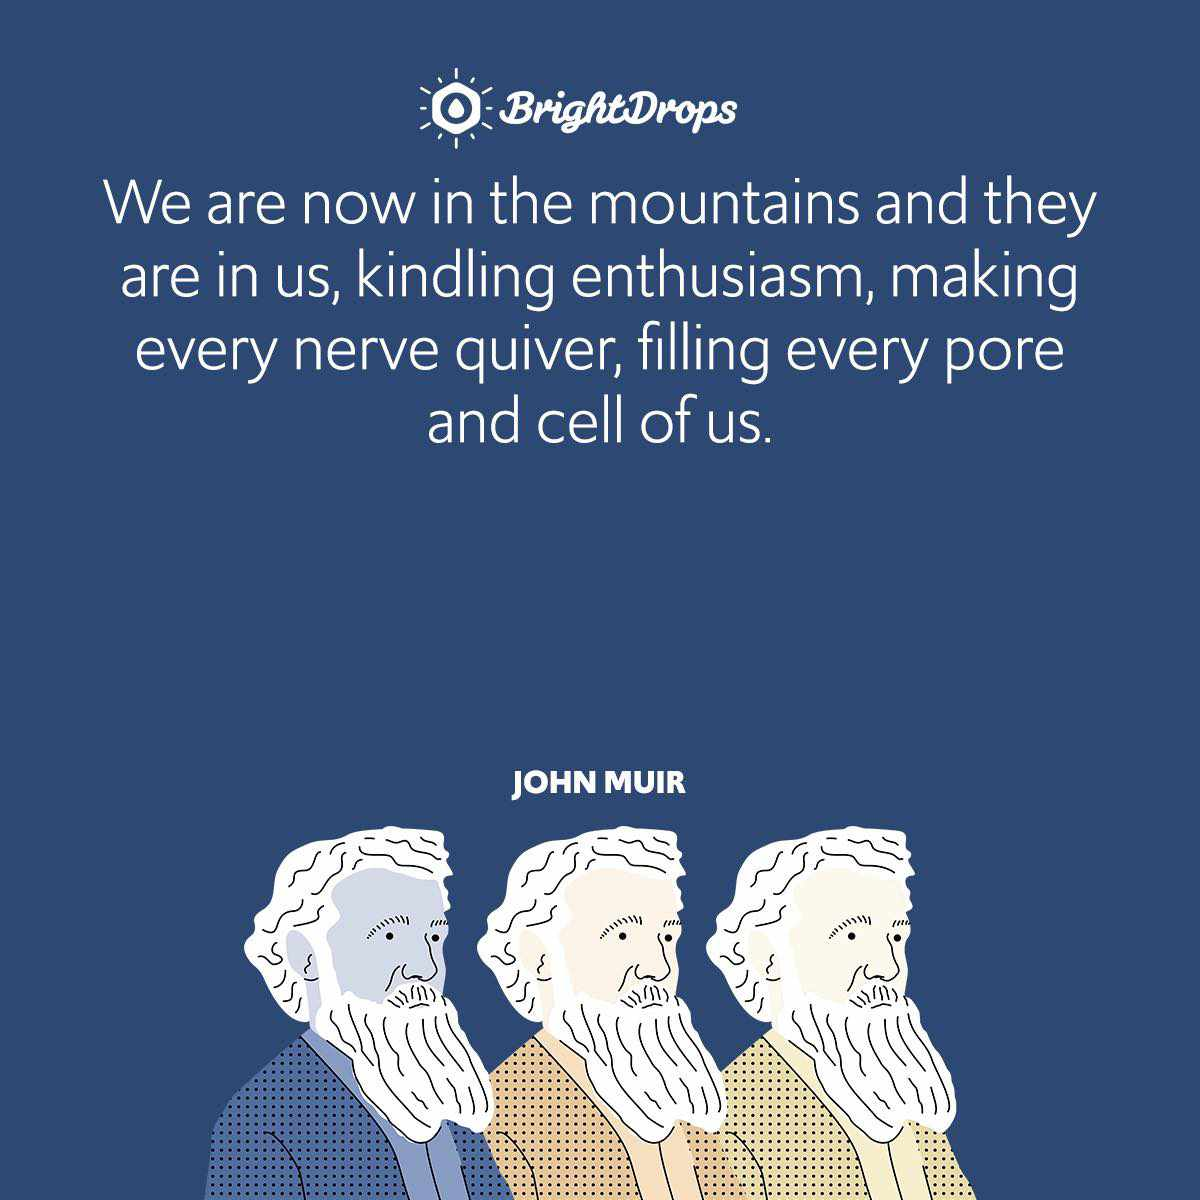 We are now in the mountains and they are in us, kindling enthusiasm, making every nerve quiver, filling every pore and cell of us.